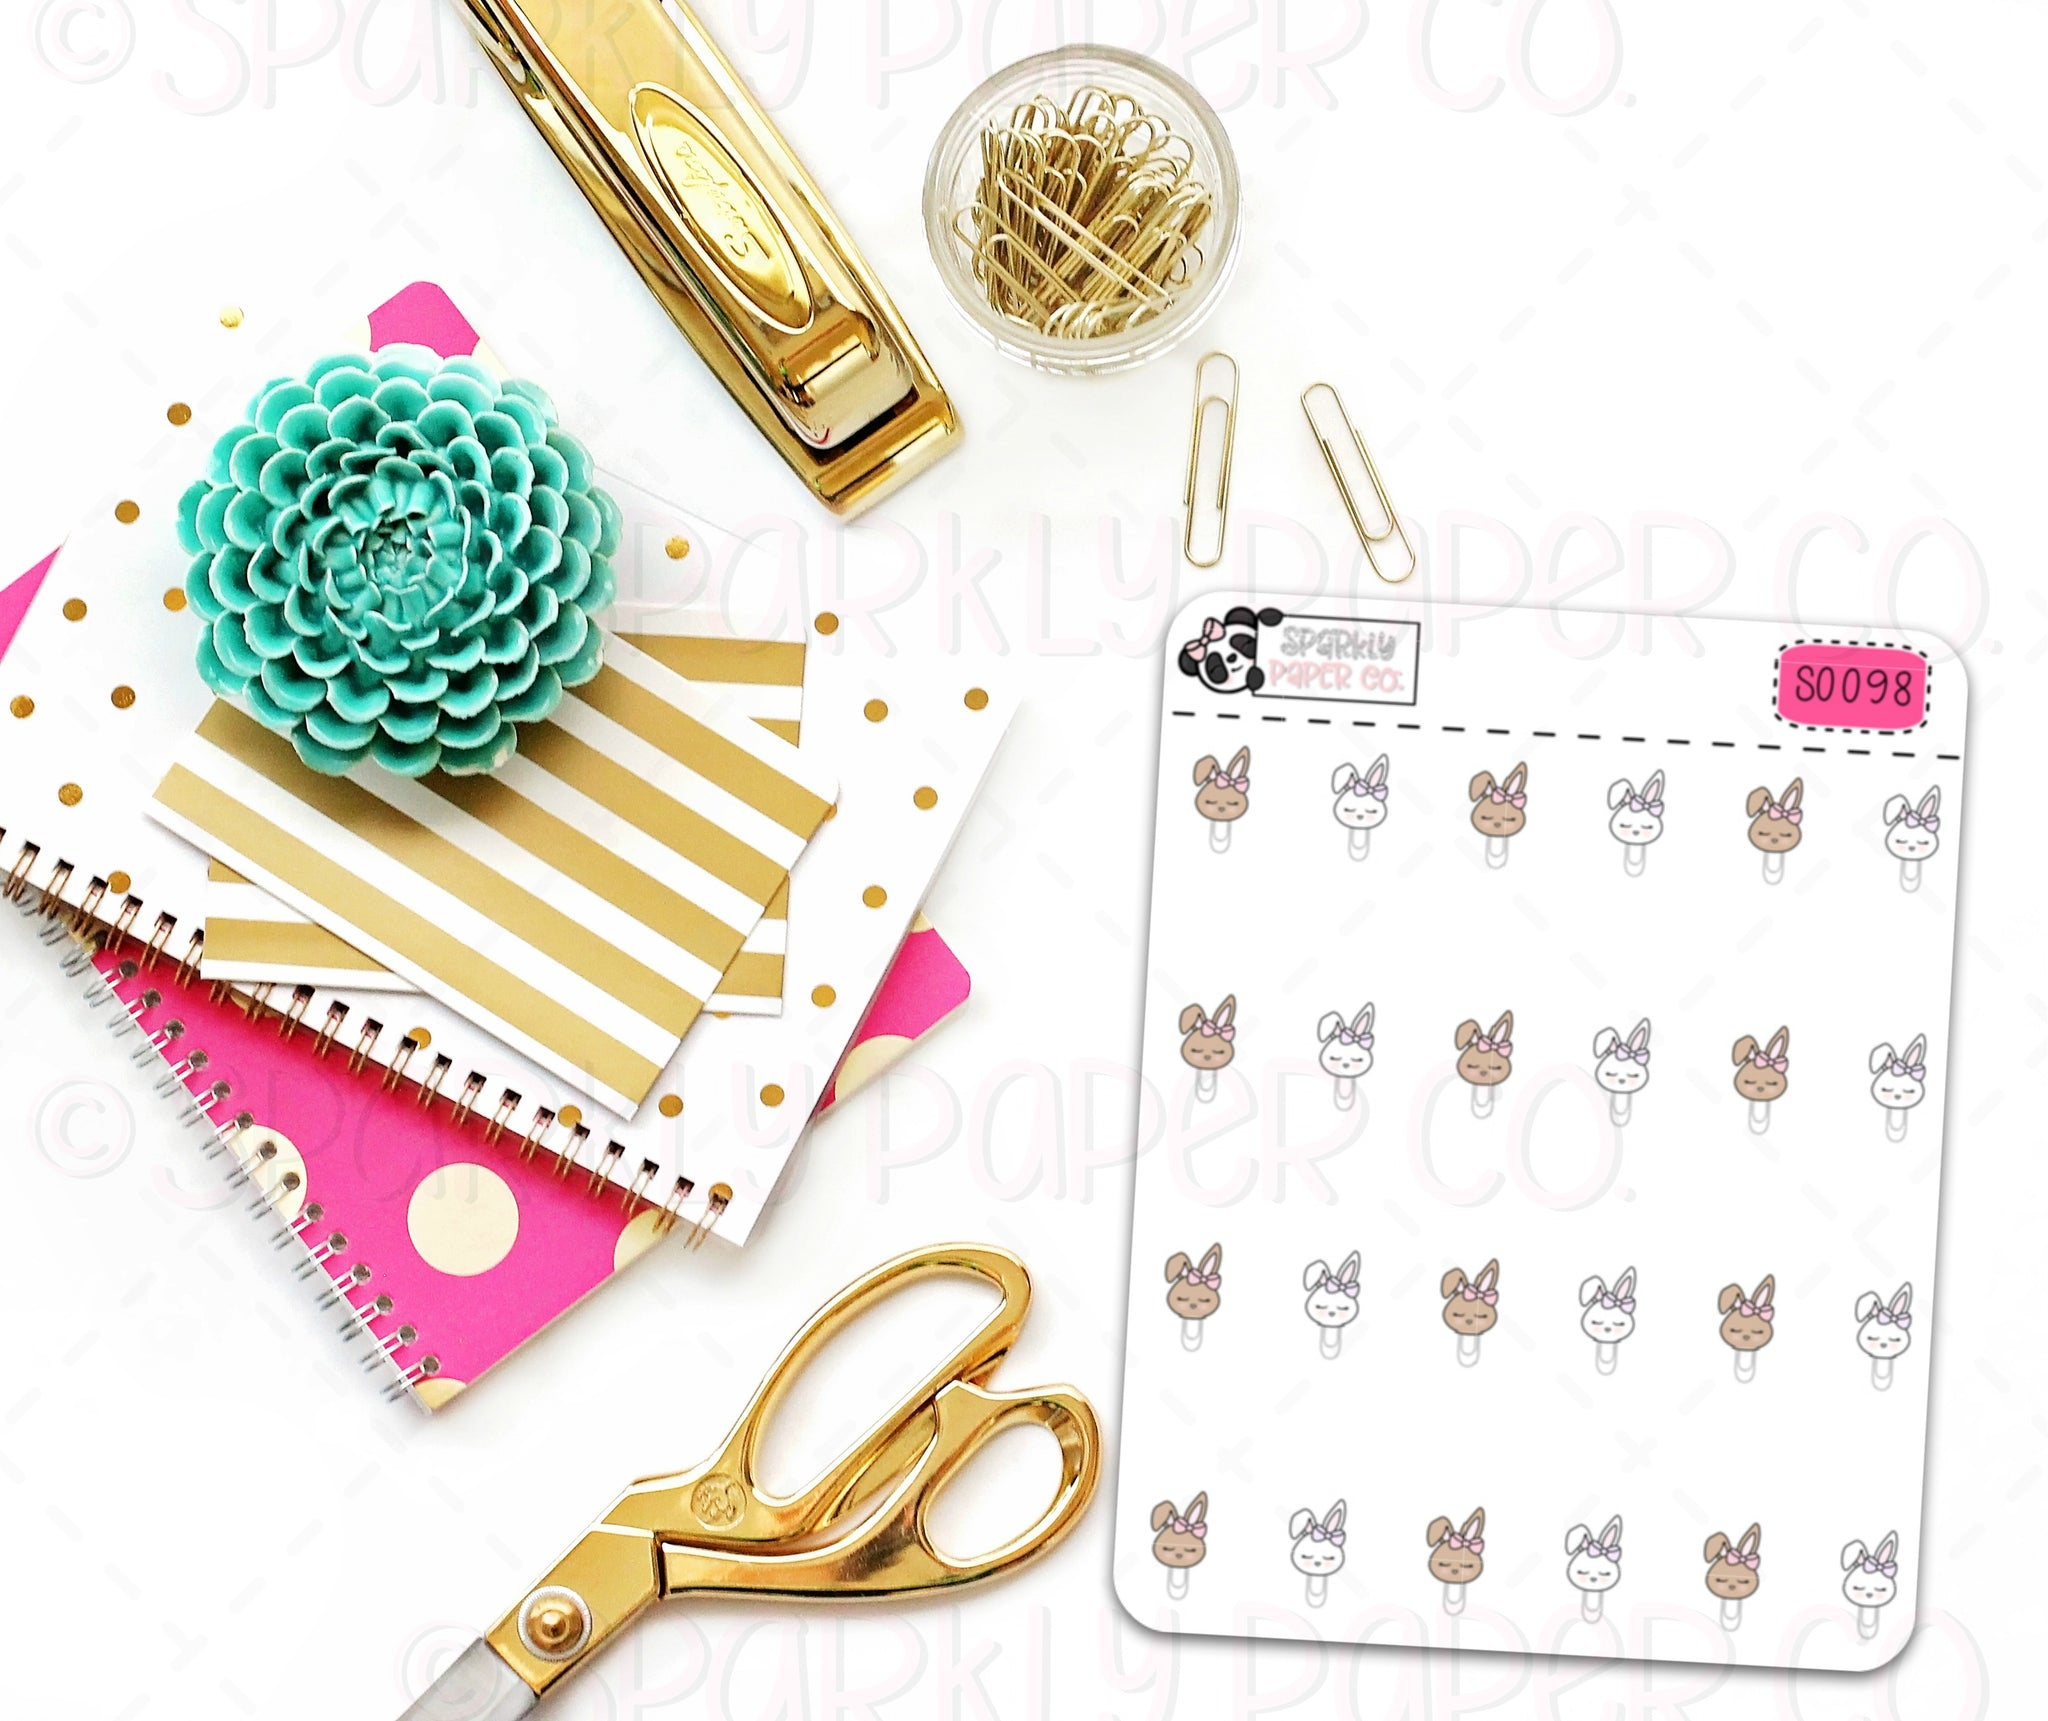 Bunny Head Clips Stickers (matte removable) S0098